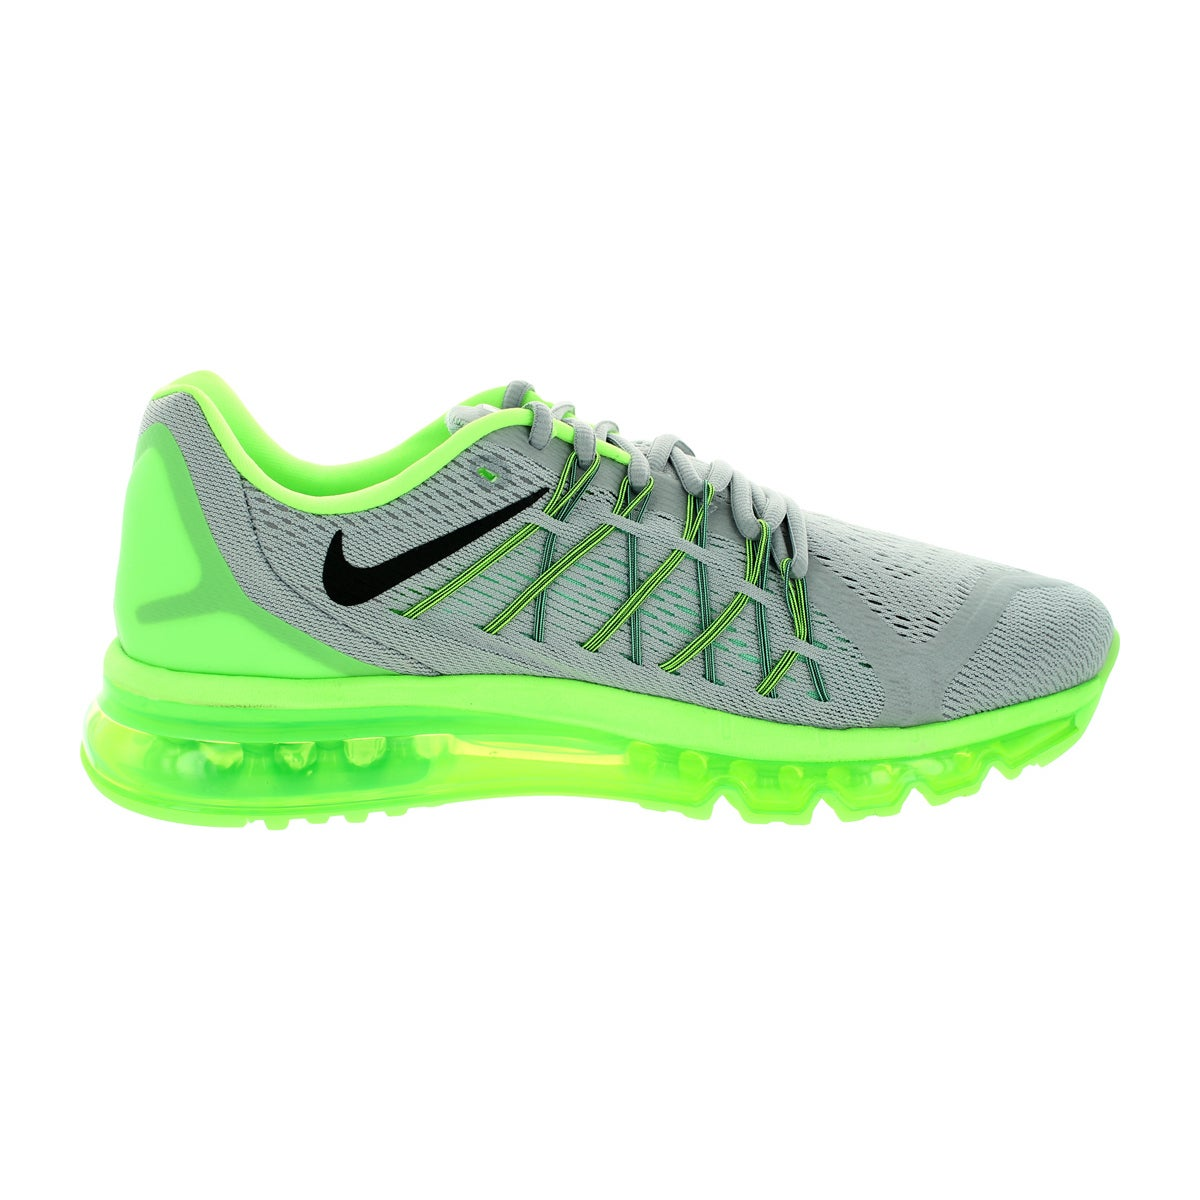 c0ba3d4b2769 Shop Nike Men's Air Max 2015 Wolf Grey/Black/G Glw/ Running Shoe - Free  Shipping Today - Overstock - 12330956